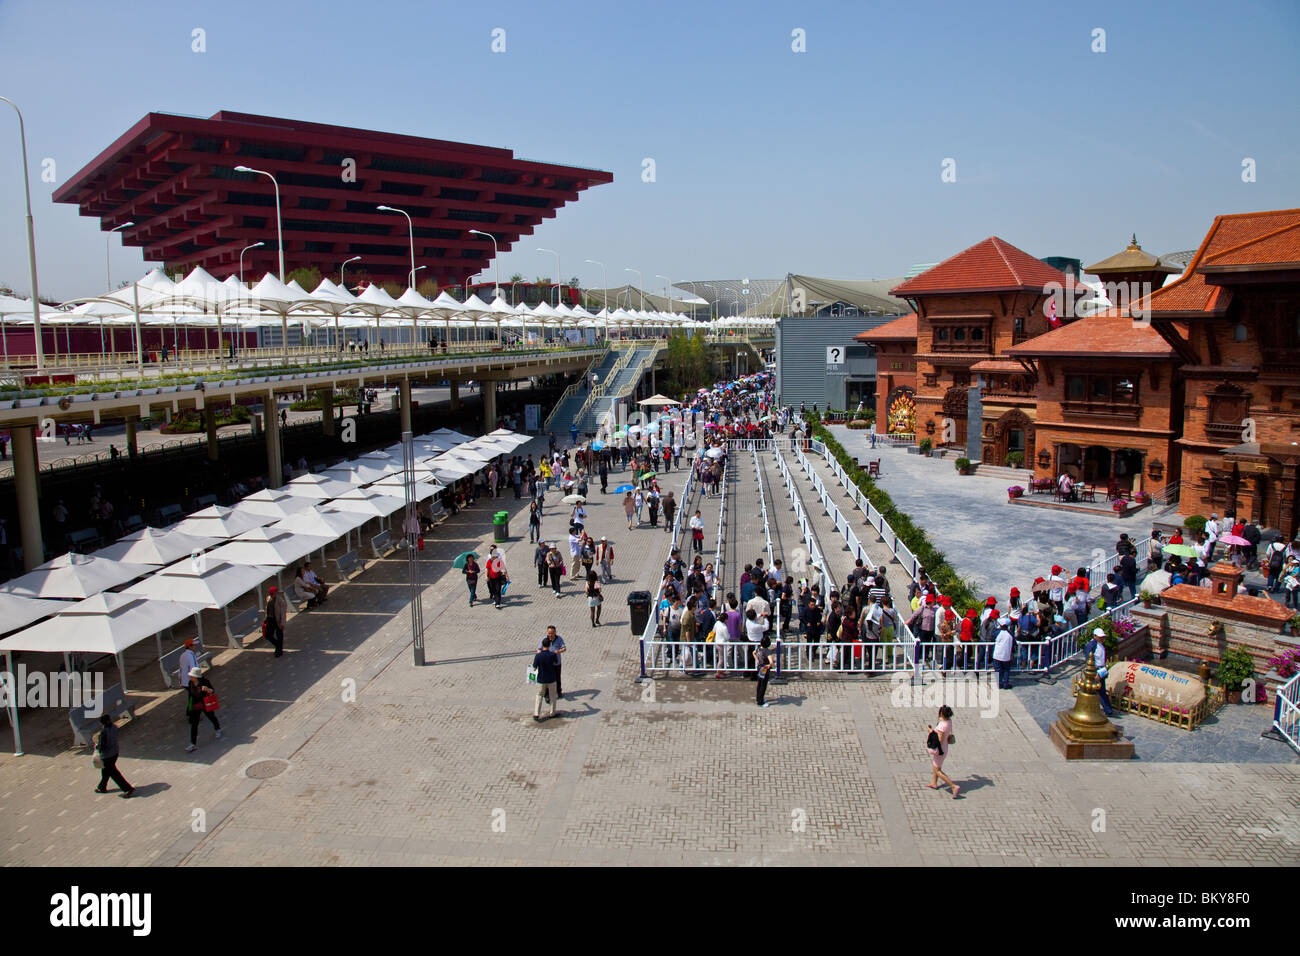 China Pavilion Expo 2010 Stock Photos \u0026 China Pavilion Expo 2010 ...